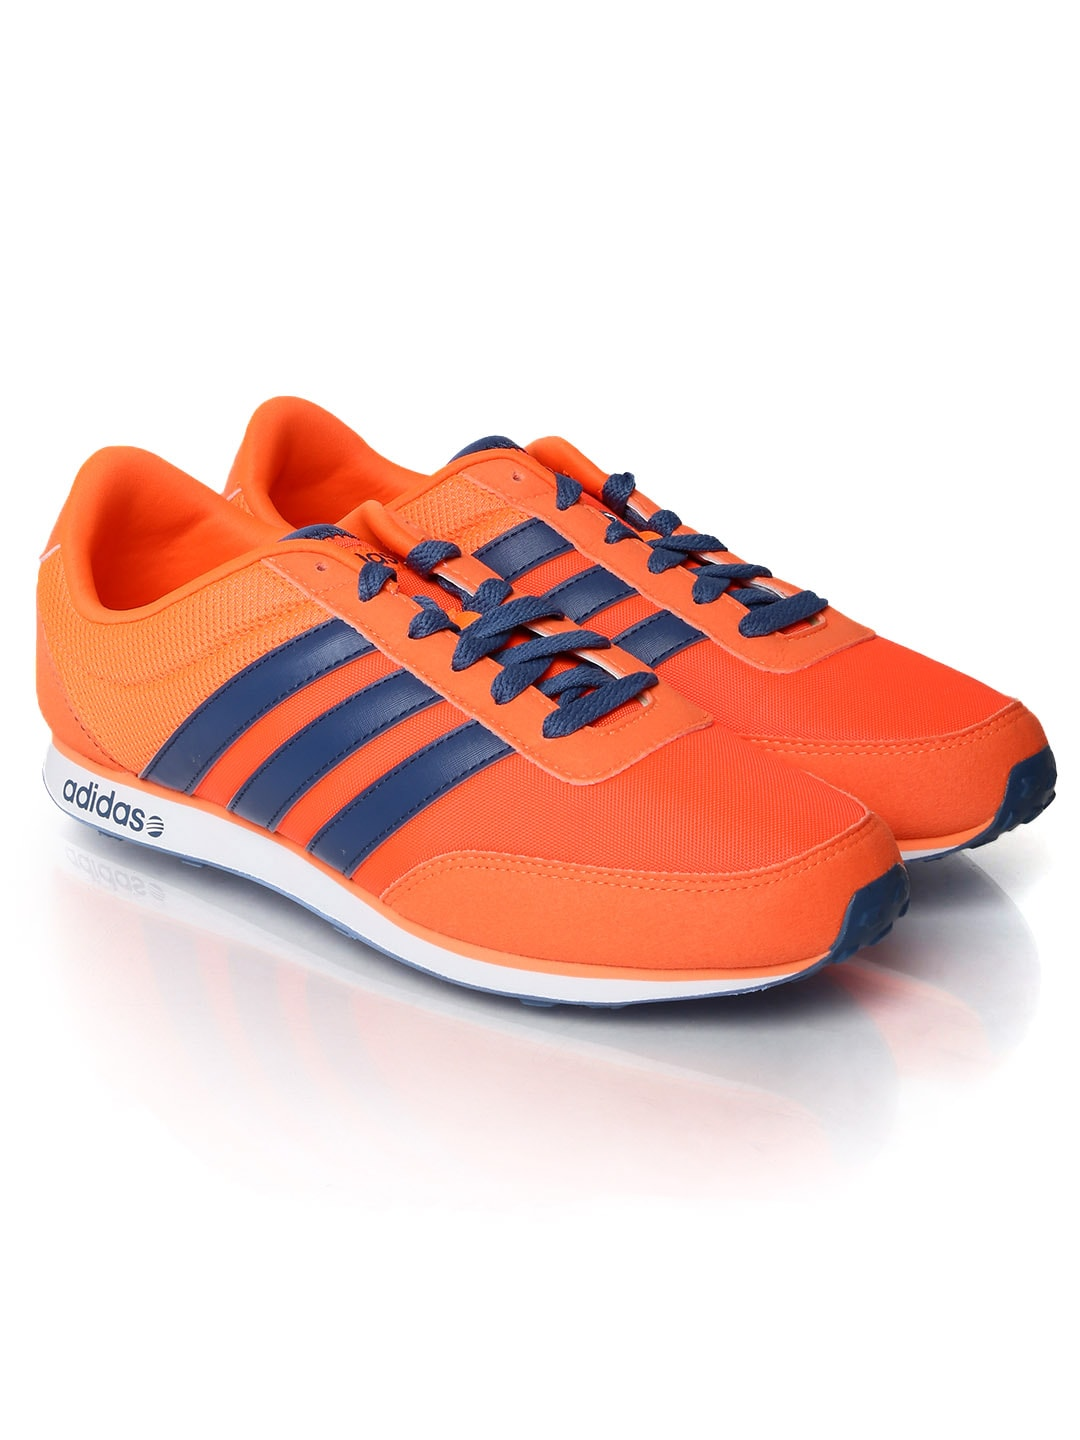 purchase adidas neo v racer nylon price f3d9f a32bd